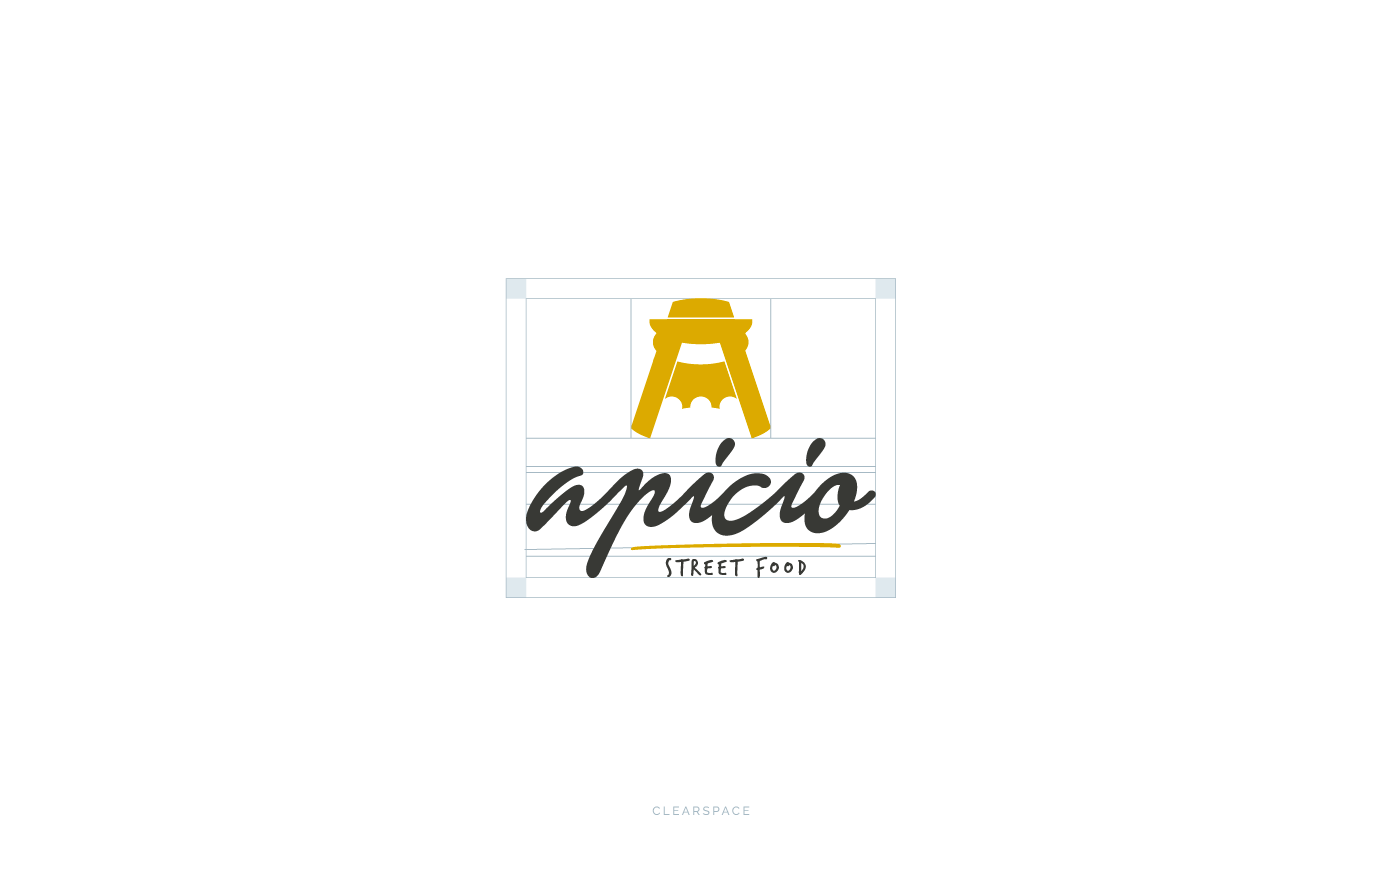 Apicio Street Food Area di Rispetto logo